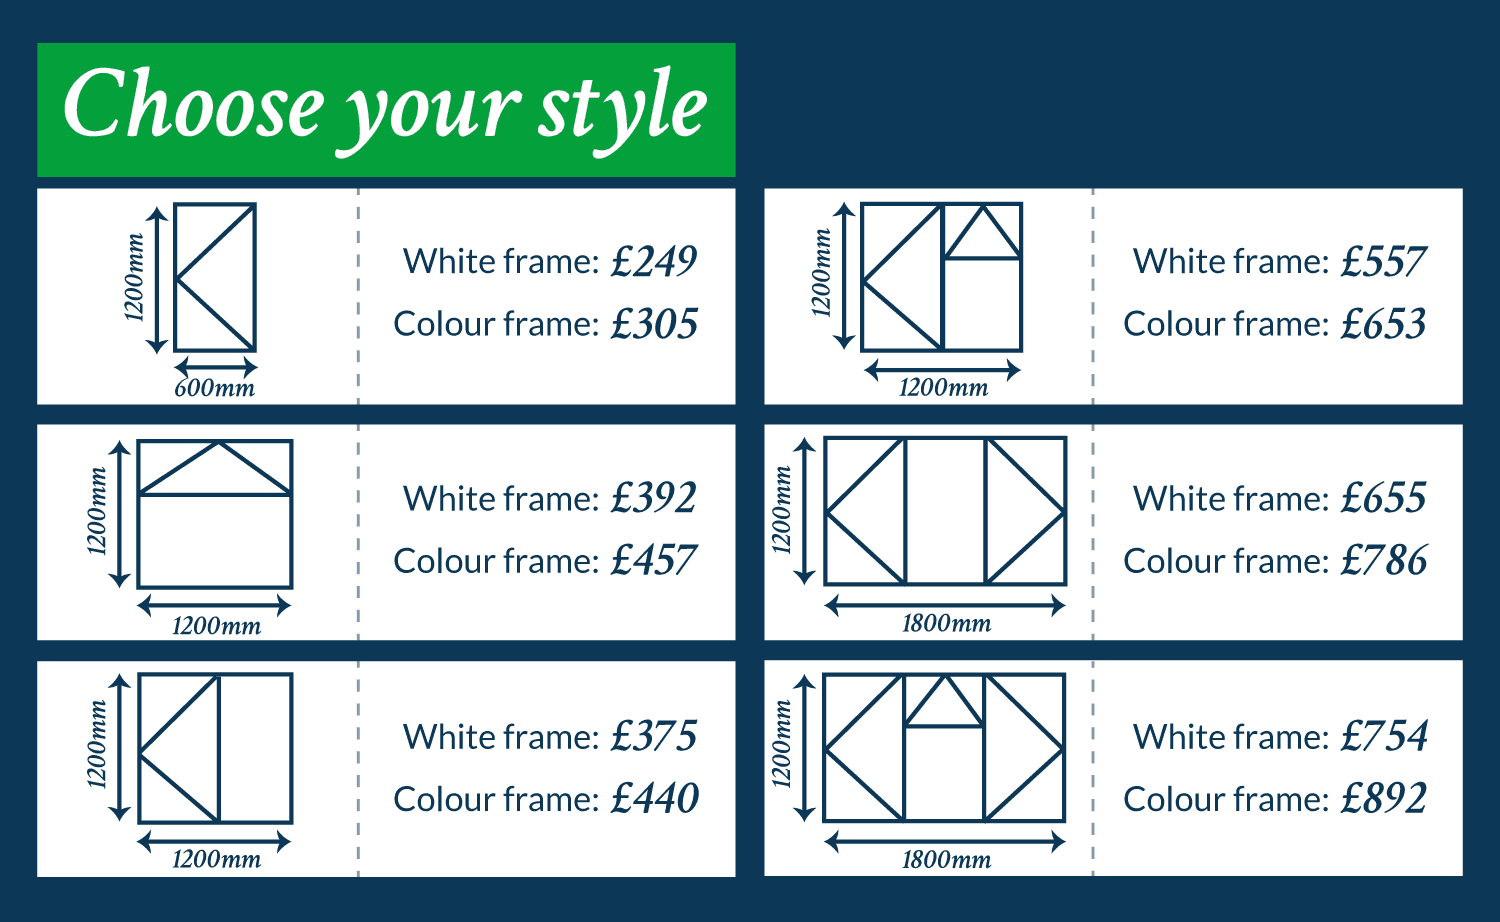 upvc casement window styles and prices for November 2019